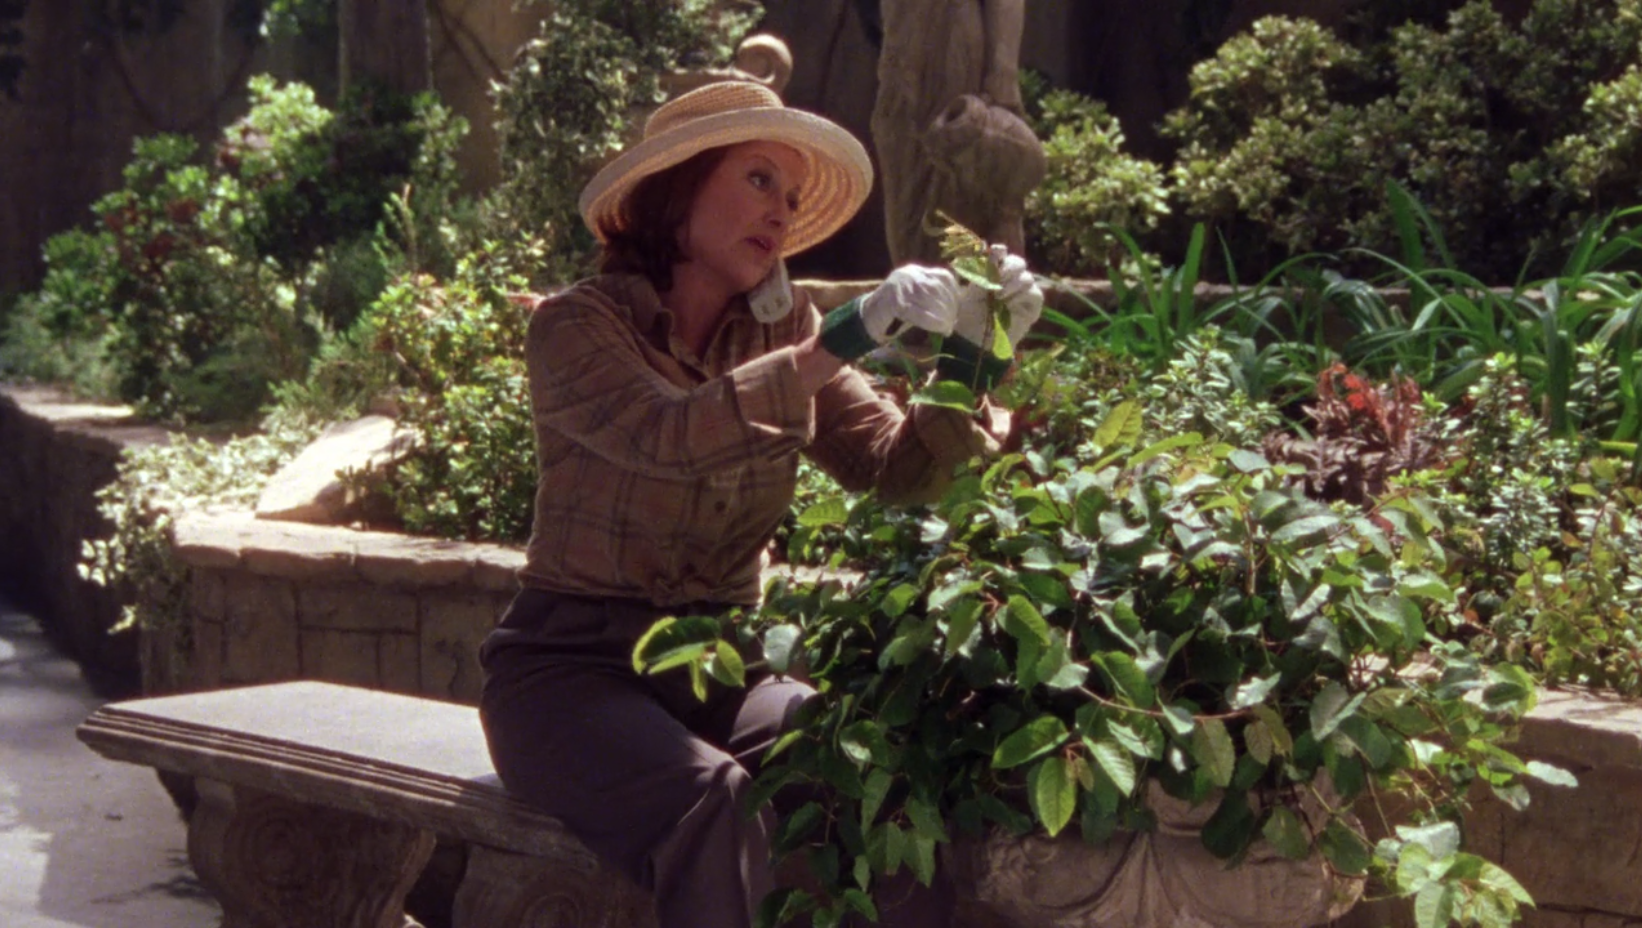 Emilys-Gardening-Outfit-Eight-O-Clock-At-The-Oasis-Gilmore-Girls